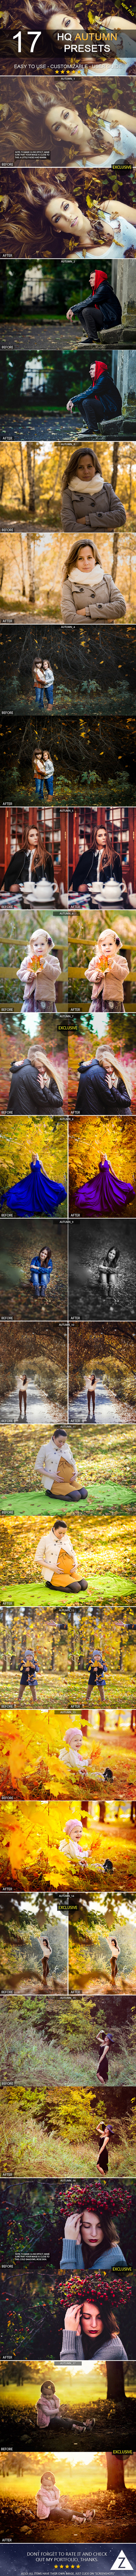 17 HQ Autumn Presets - Portrait Lightroom Presets